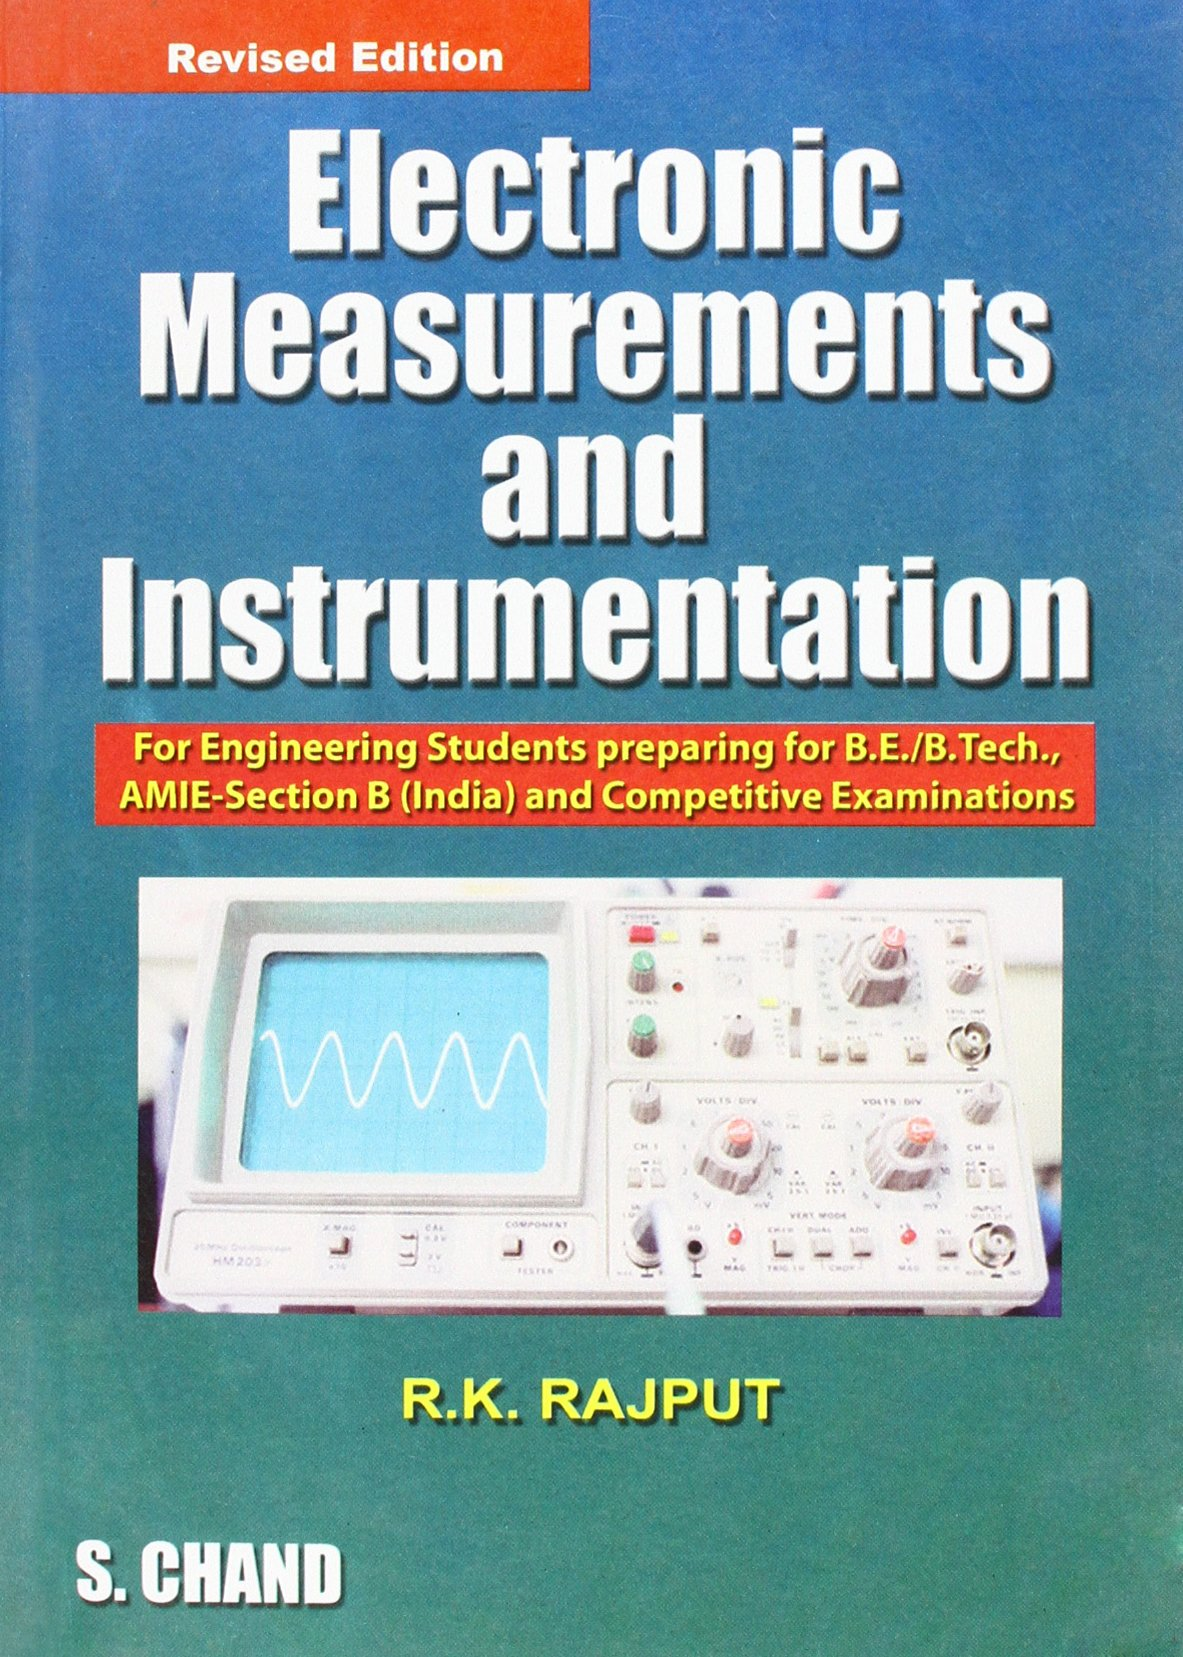 Electronics Instrumentation And Measurement Pdf